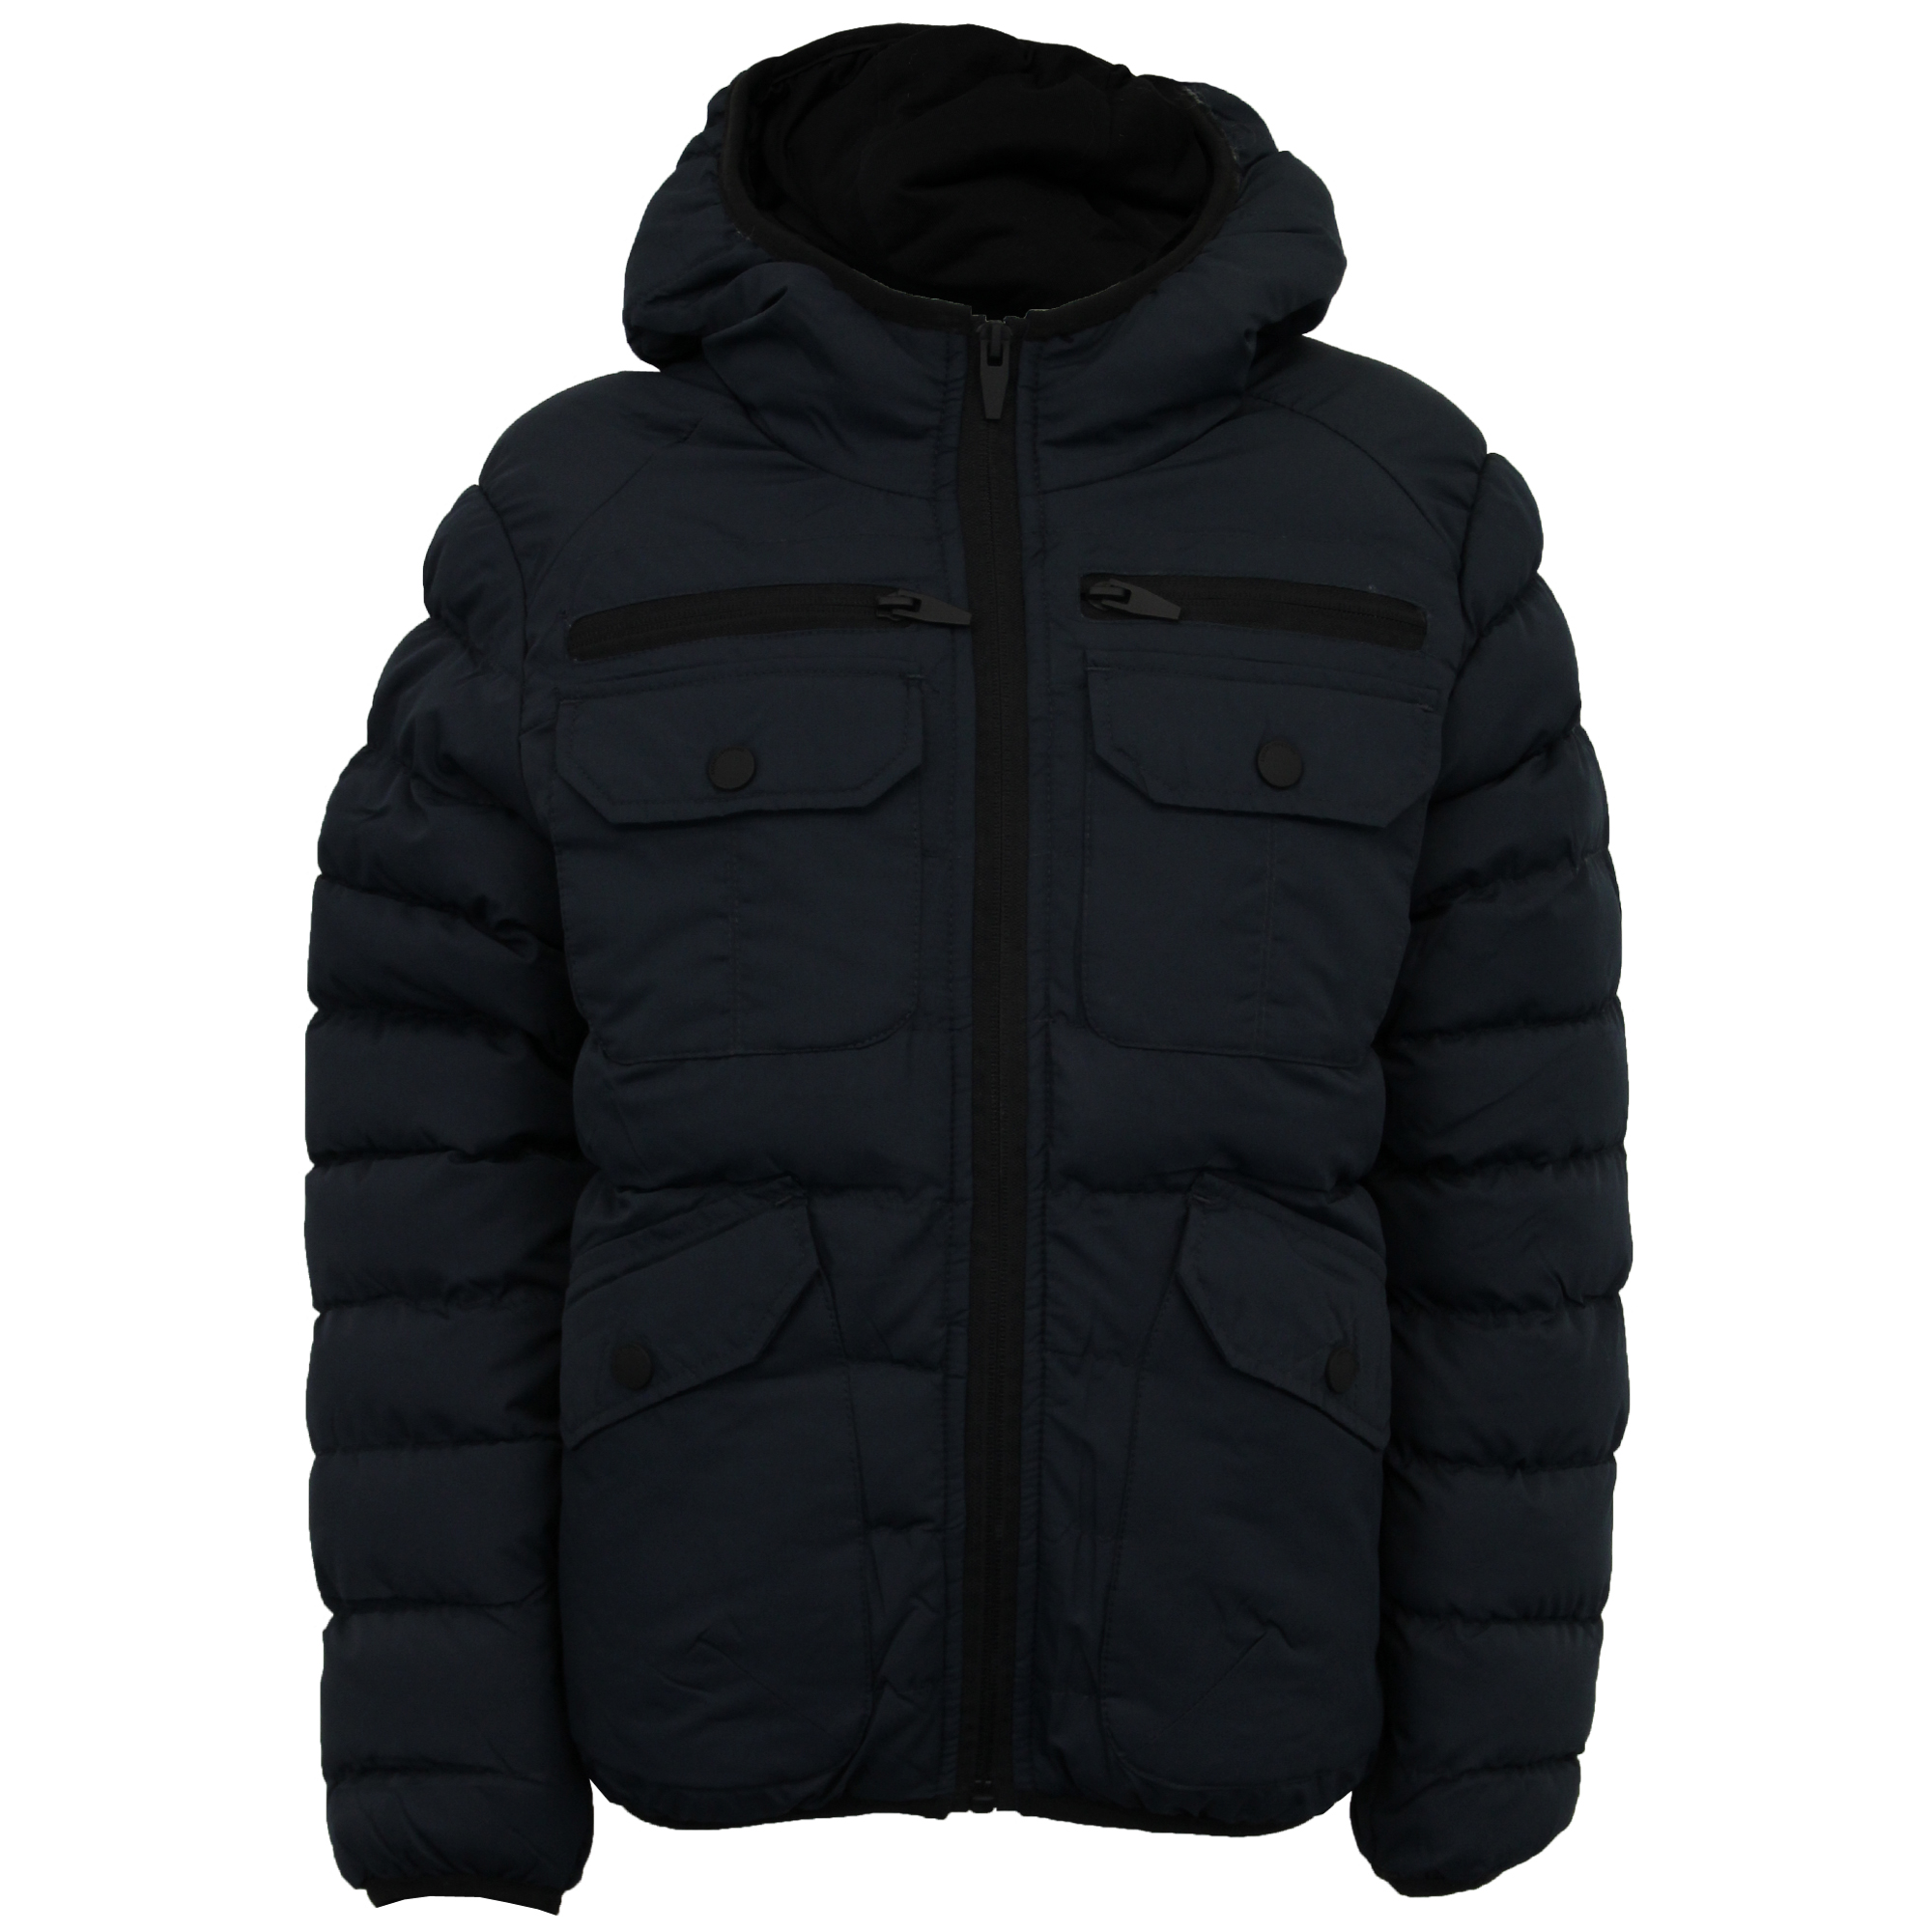 Buy the Padded Jacket now for $ As close to a hug as a jacket can get, this fleece-lined padded number will keep things cosy down to temperatures as low as °C. It Boys; Coats & Jackets; Coats; Padded Jacket Padded Jacket B Product Details As close to a hug as a jacket can get, this fleece-lined padded number will keep things.